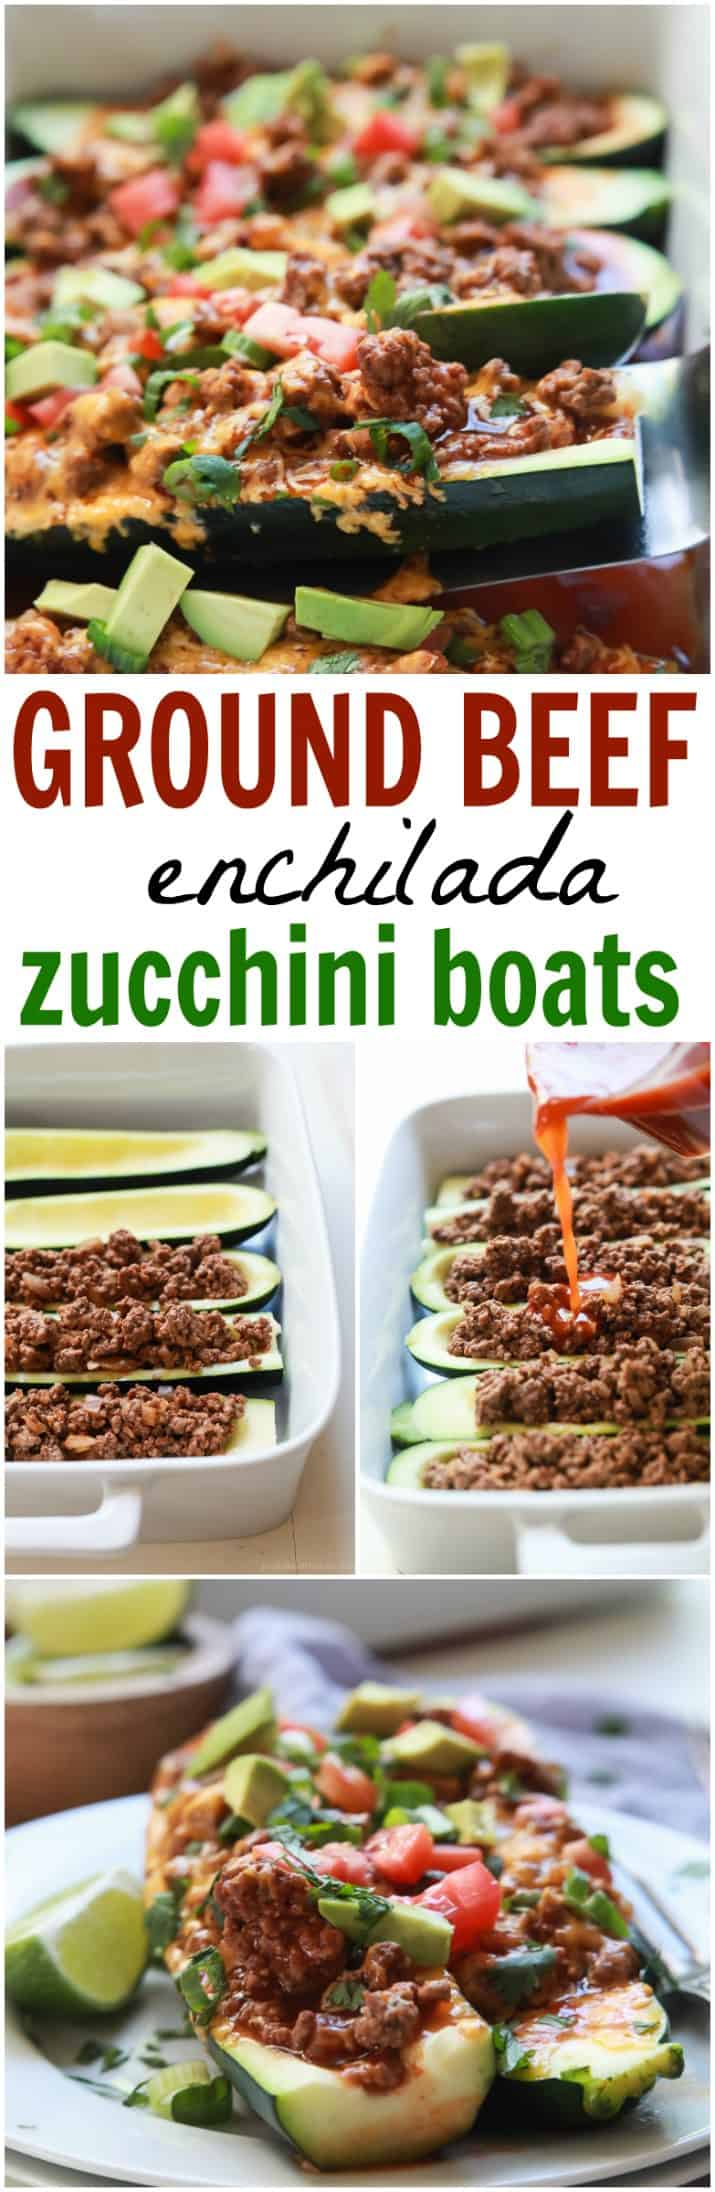 Ground Beef Enchilada Zucchini Boats recipe collage